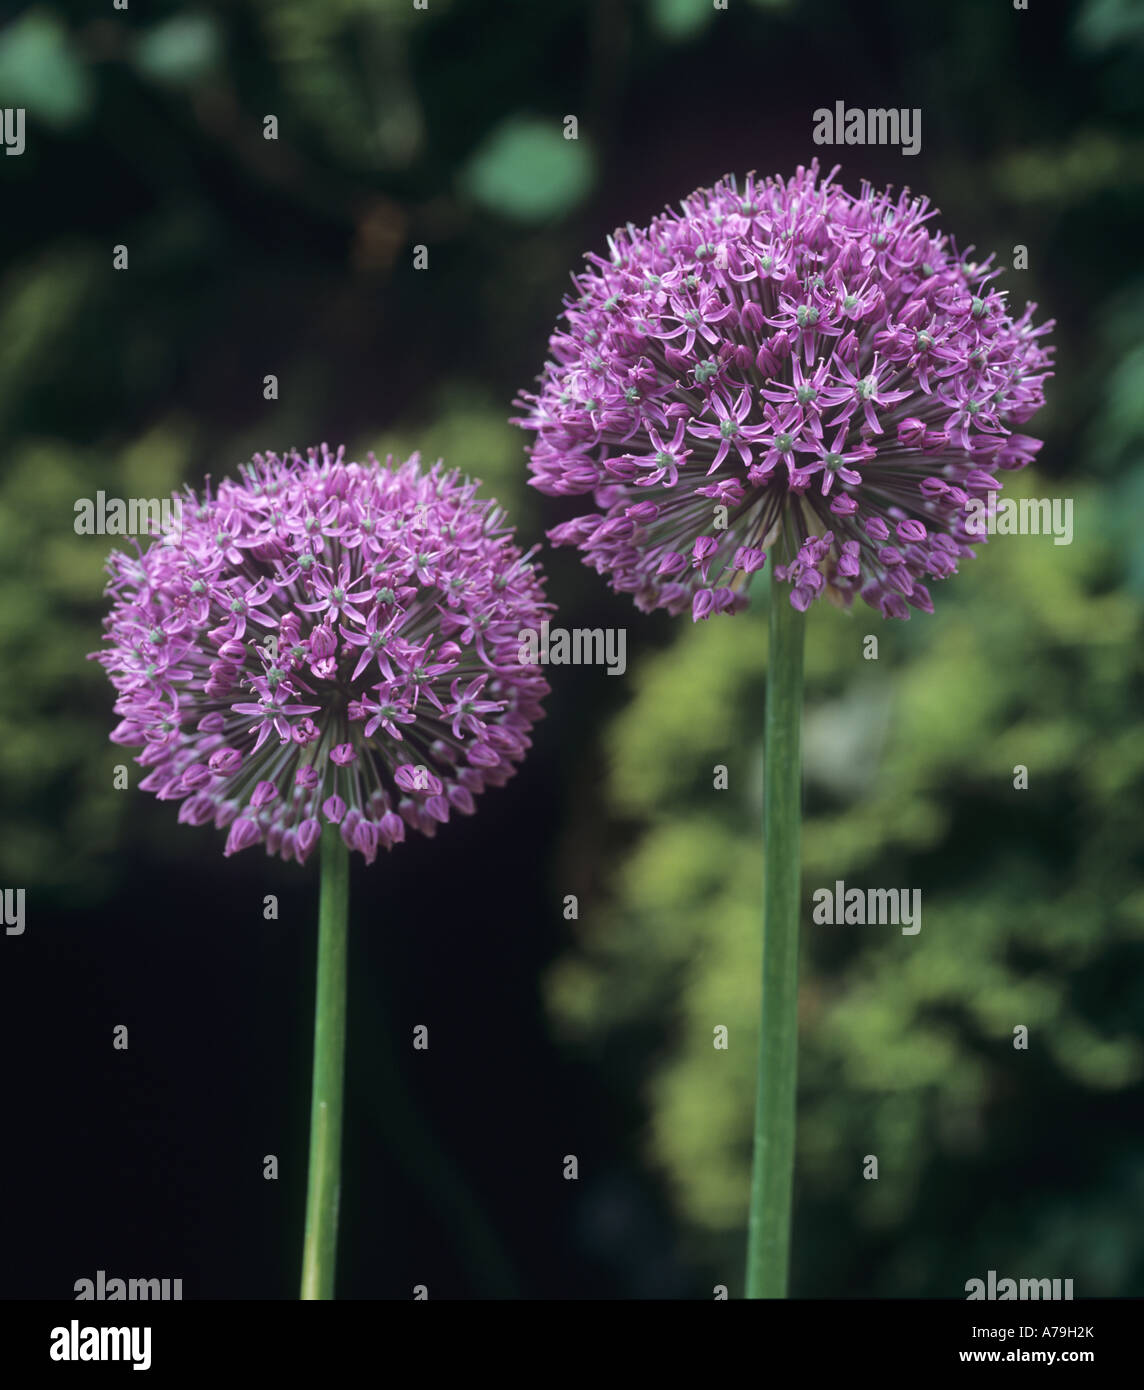 Allium Lucy Ball flower heads - Stock Image